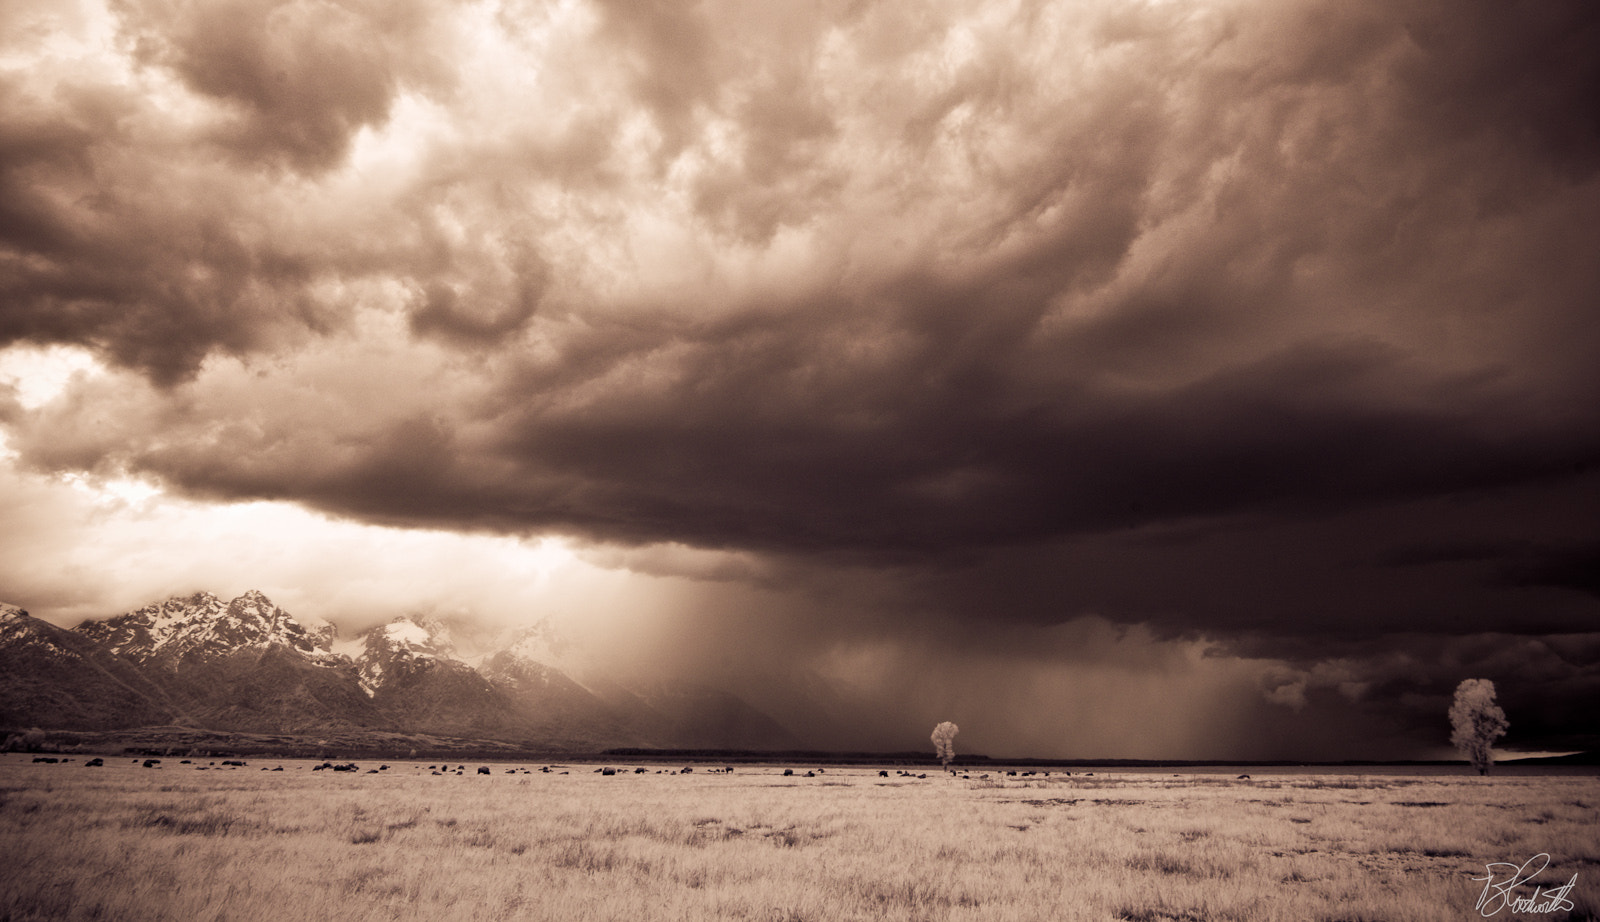 Photograph The Storm by Wil Bloodworth on 500px